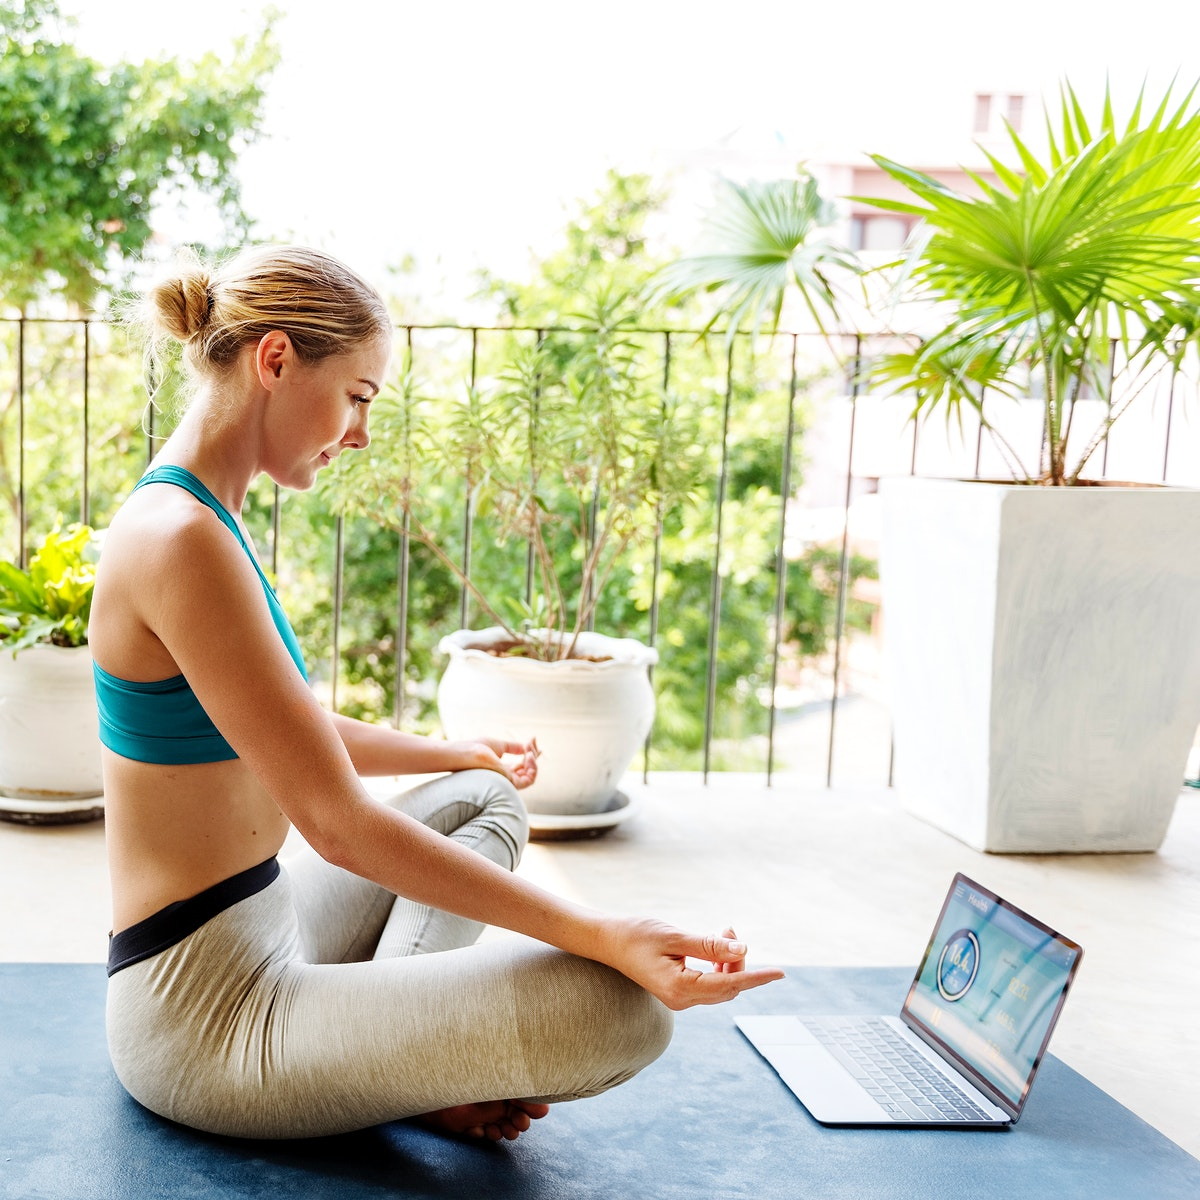 Beautiful Digital Device Fitness Calm Concentration Concept